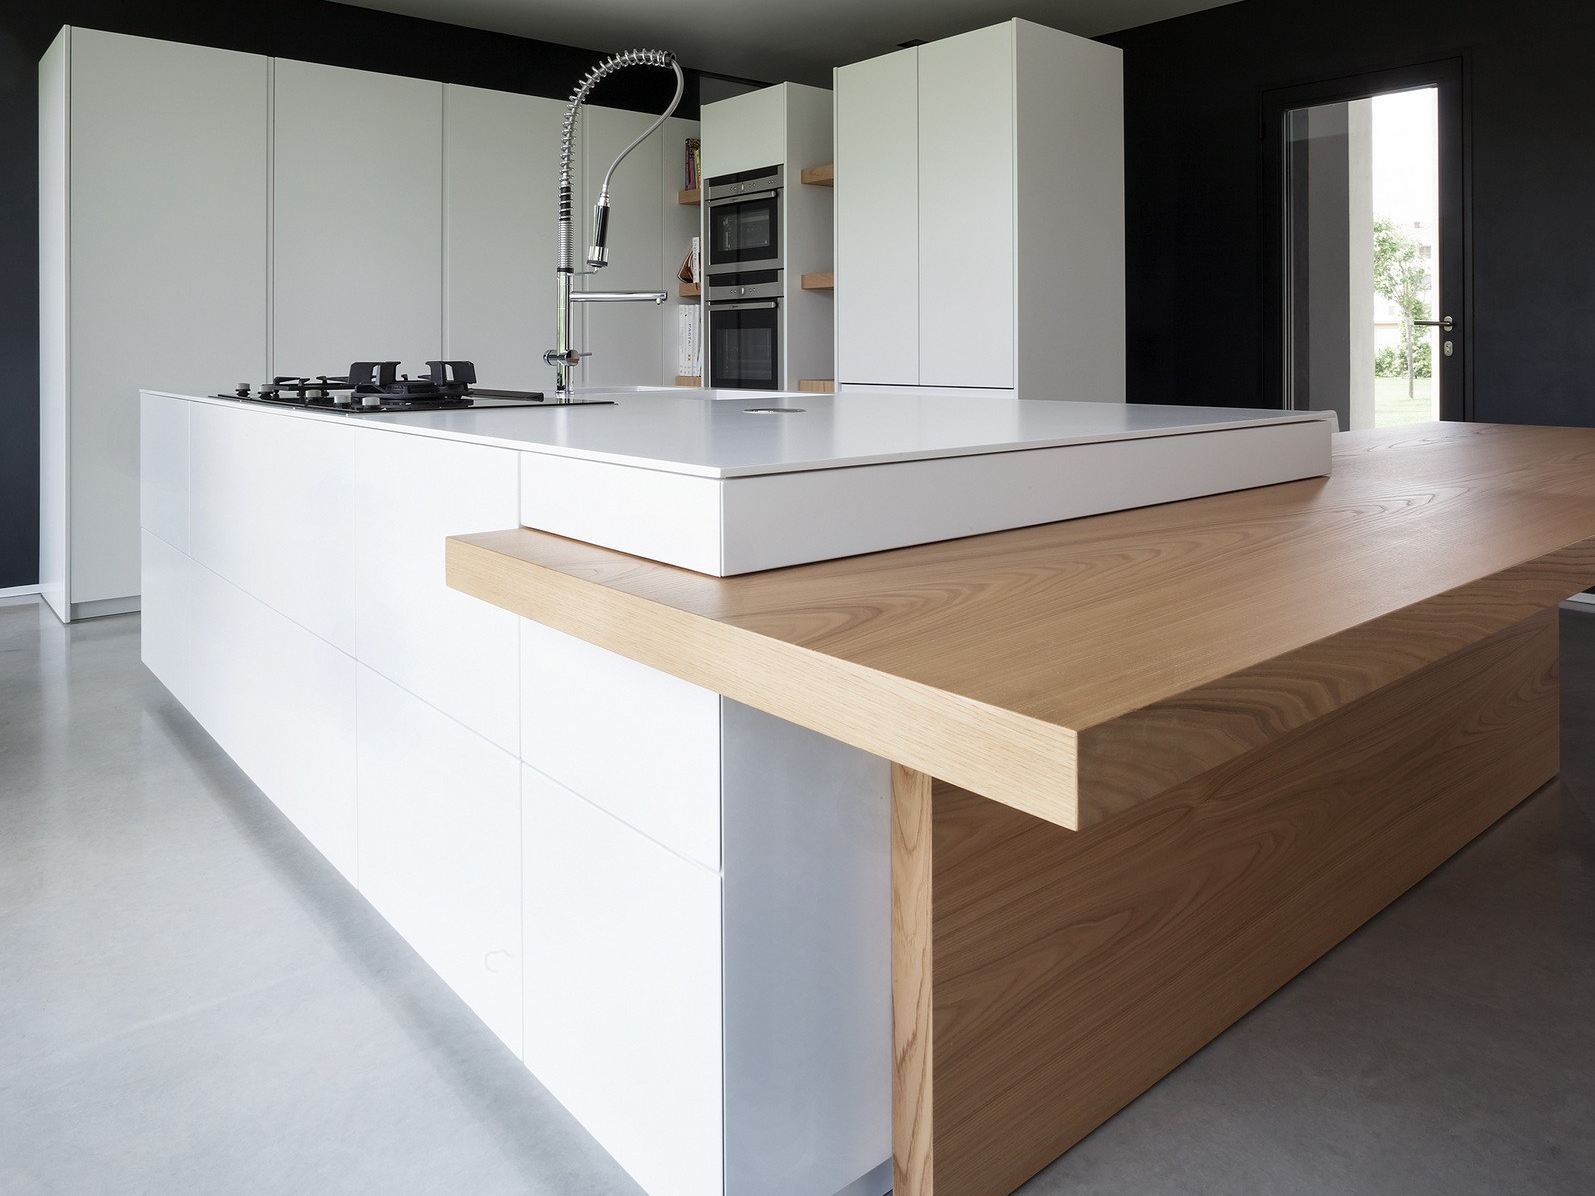 d90 kitchen without handles by tm italia cucine